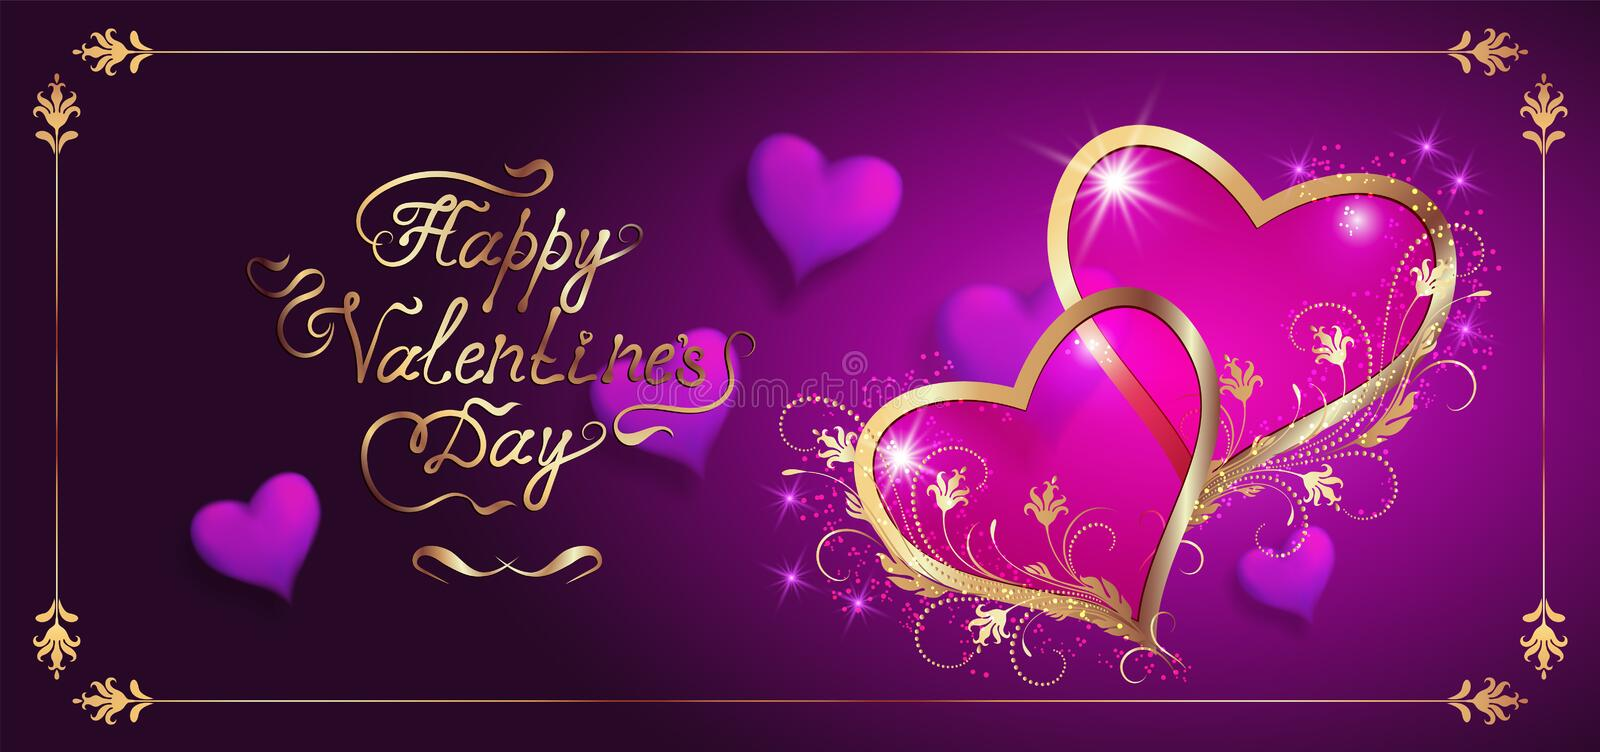 Card with decorative hearts and handwriting romantic calligraphic lettering royalty free stock image